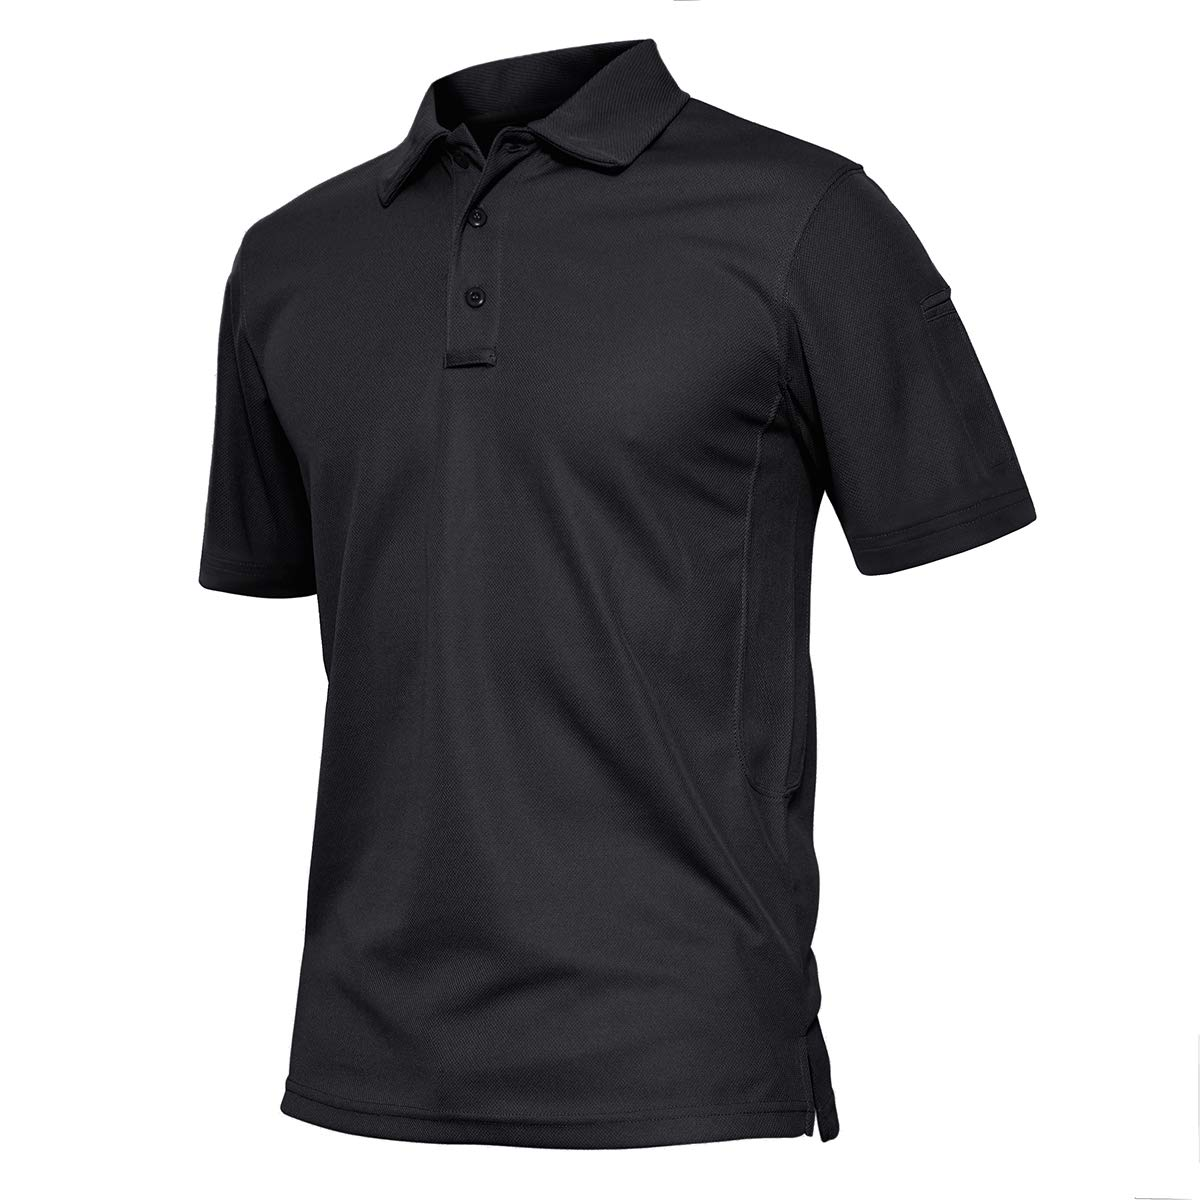 TACVASEN Men's Quick Dry Combat Airsoft Long Sleeve Polo Shirt Top,US L by TACVASEN